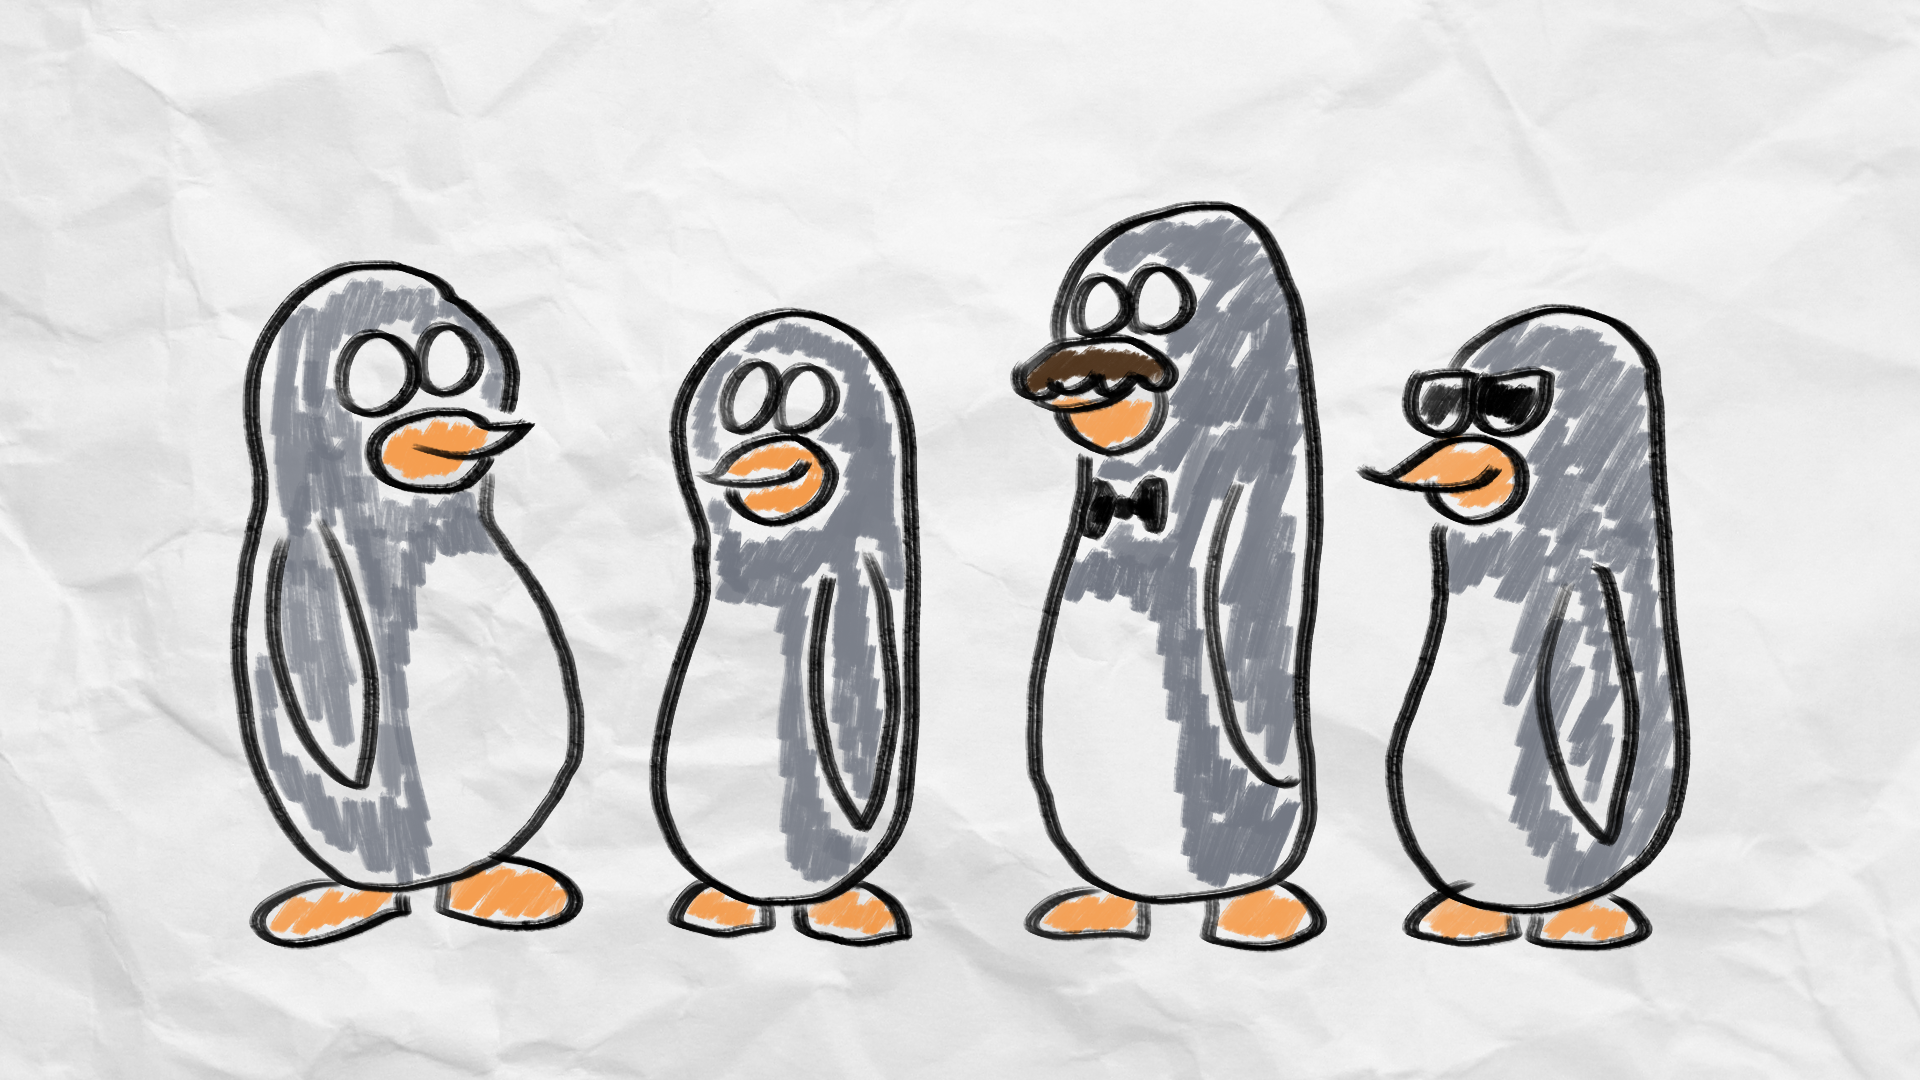 5302537_146848533973_penguinsequence.png